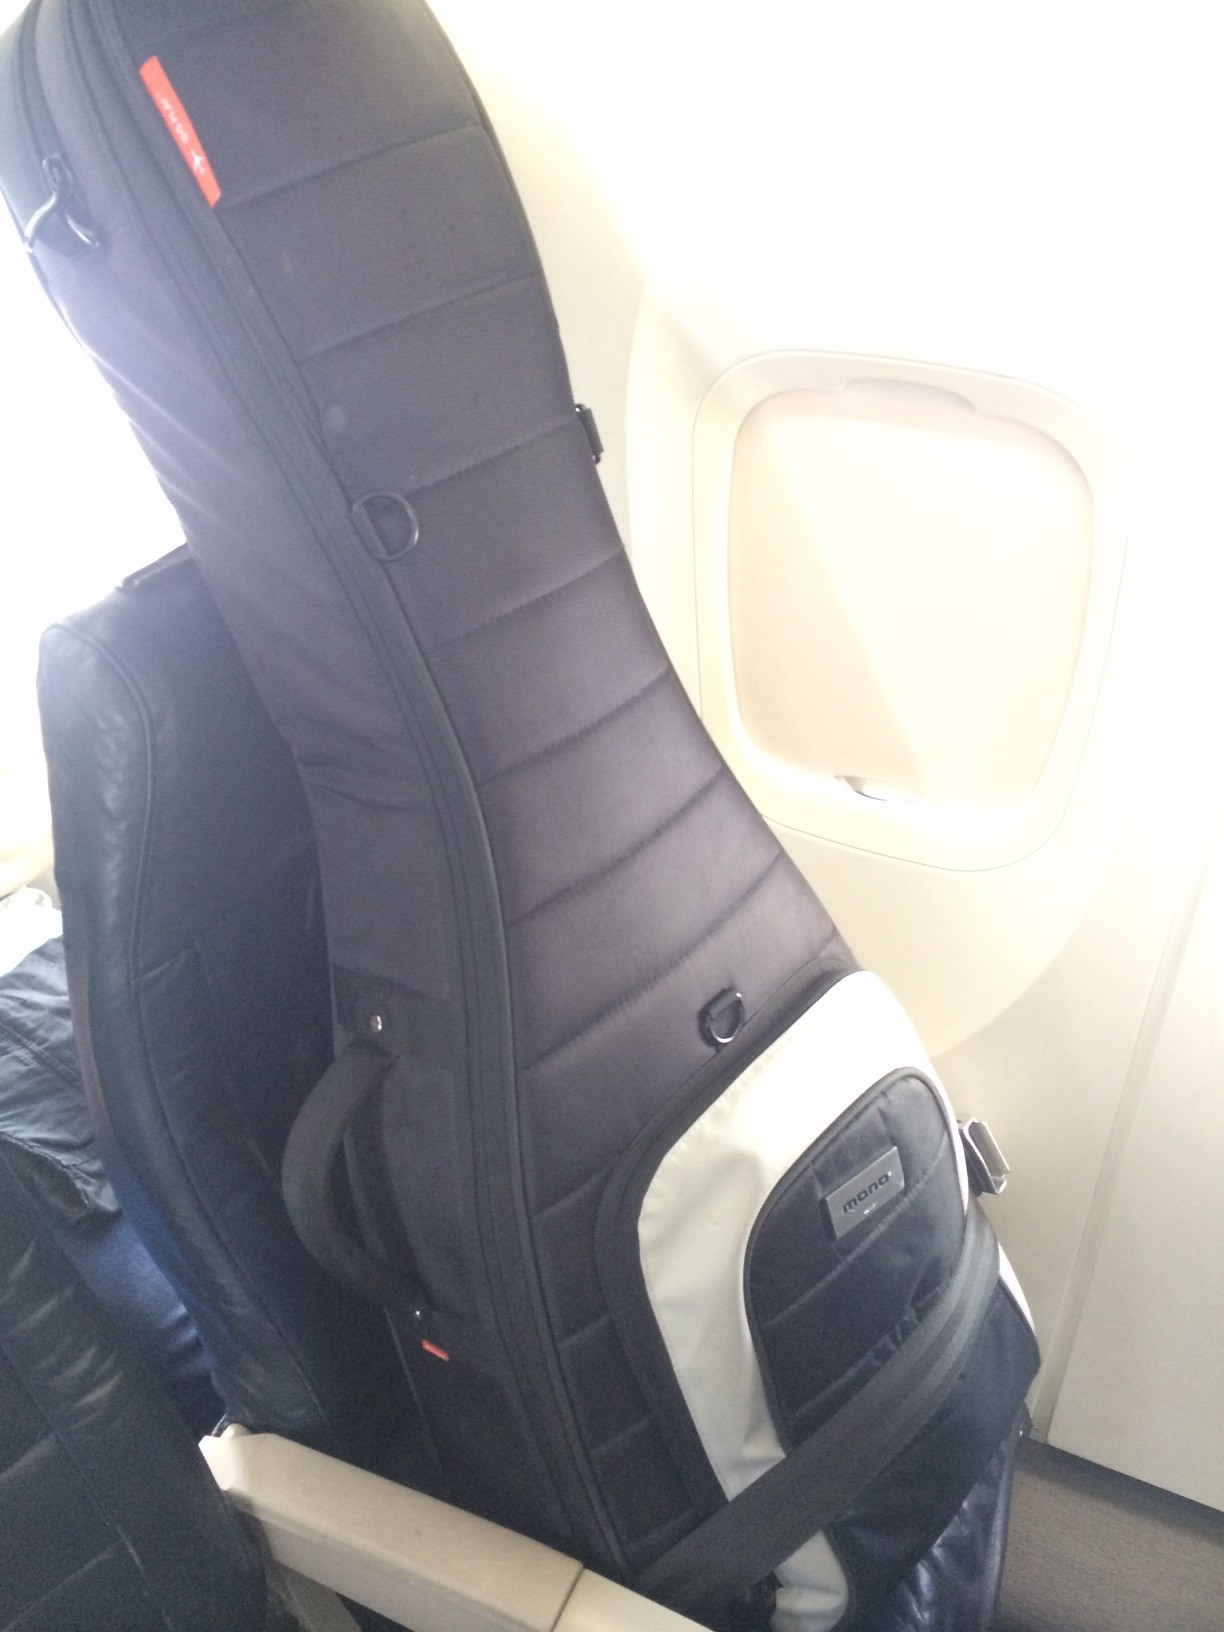 Guitar in Airline Seat